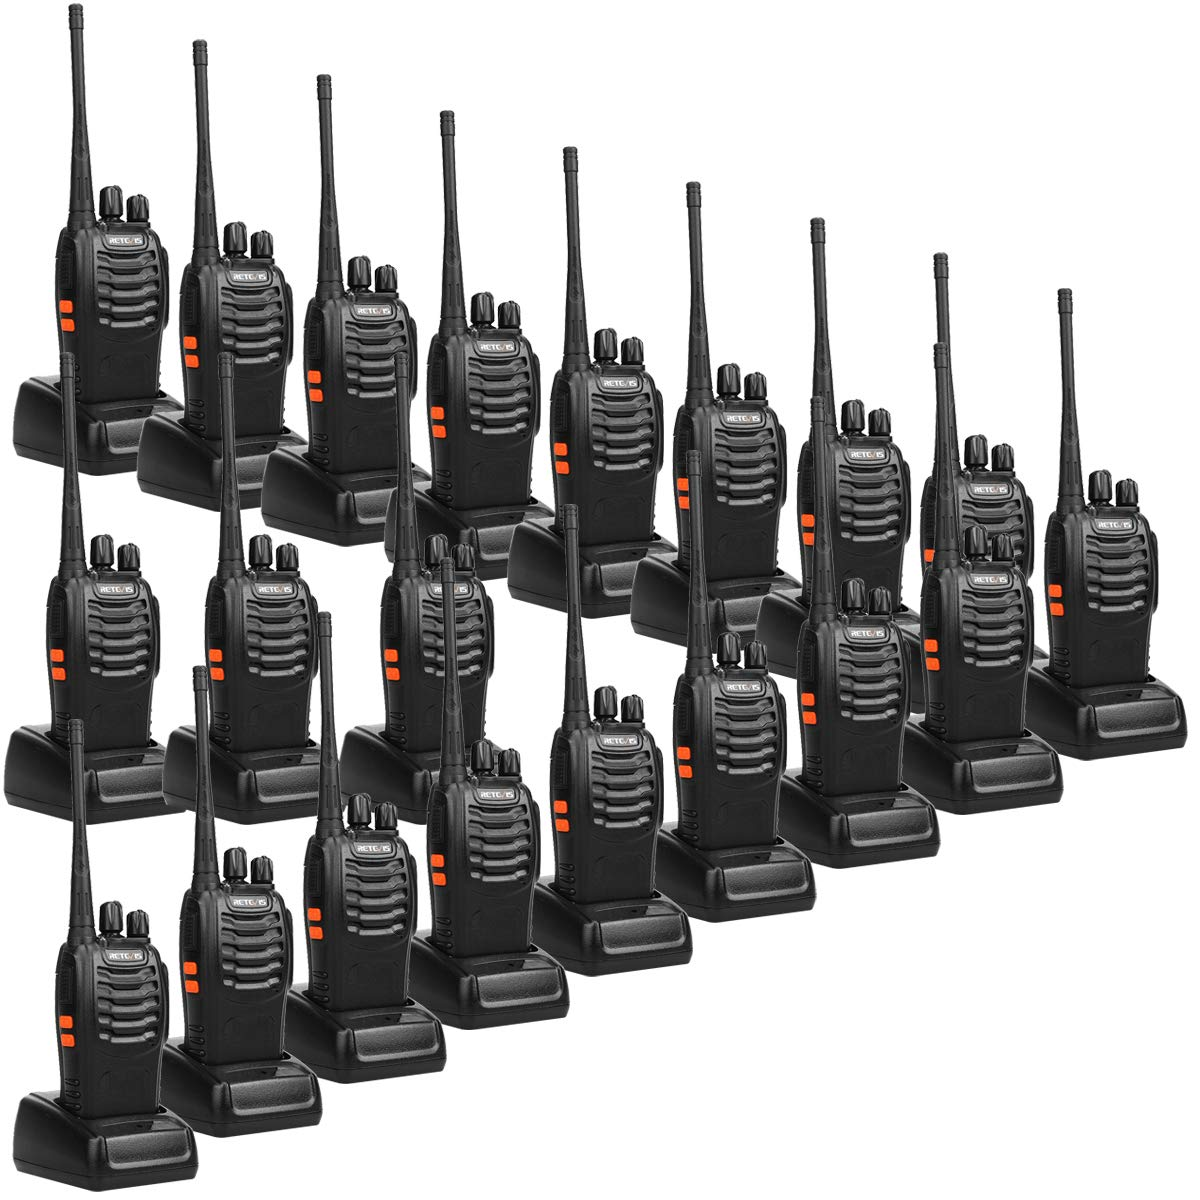 TOP 10 BEST LONG RANGE WALKIE TAKIE WITH TWO WAYS RADIO IN 2020